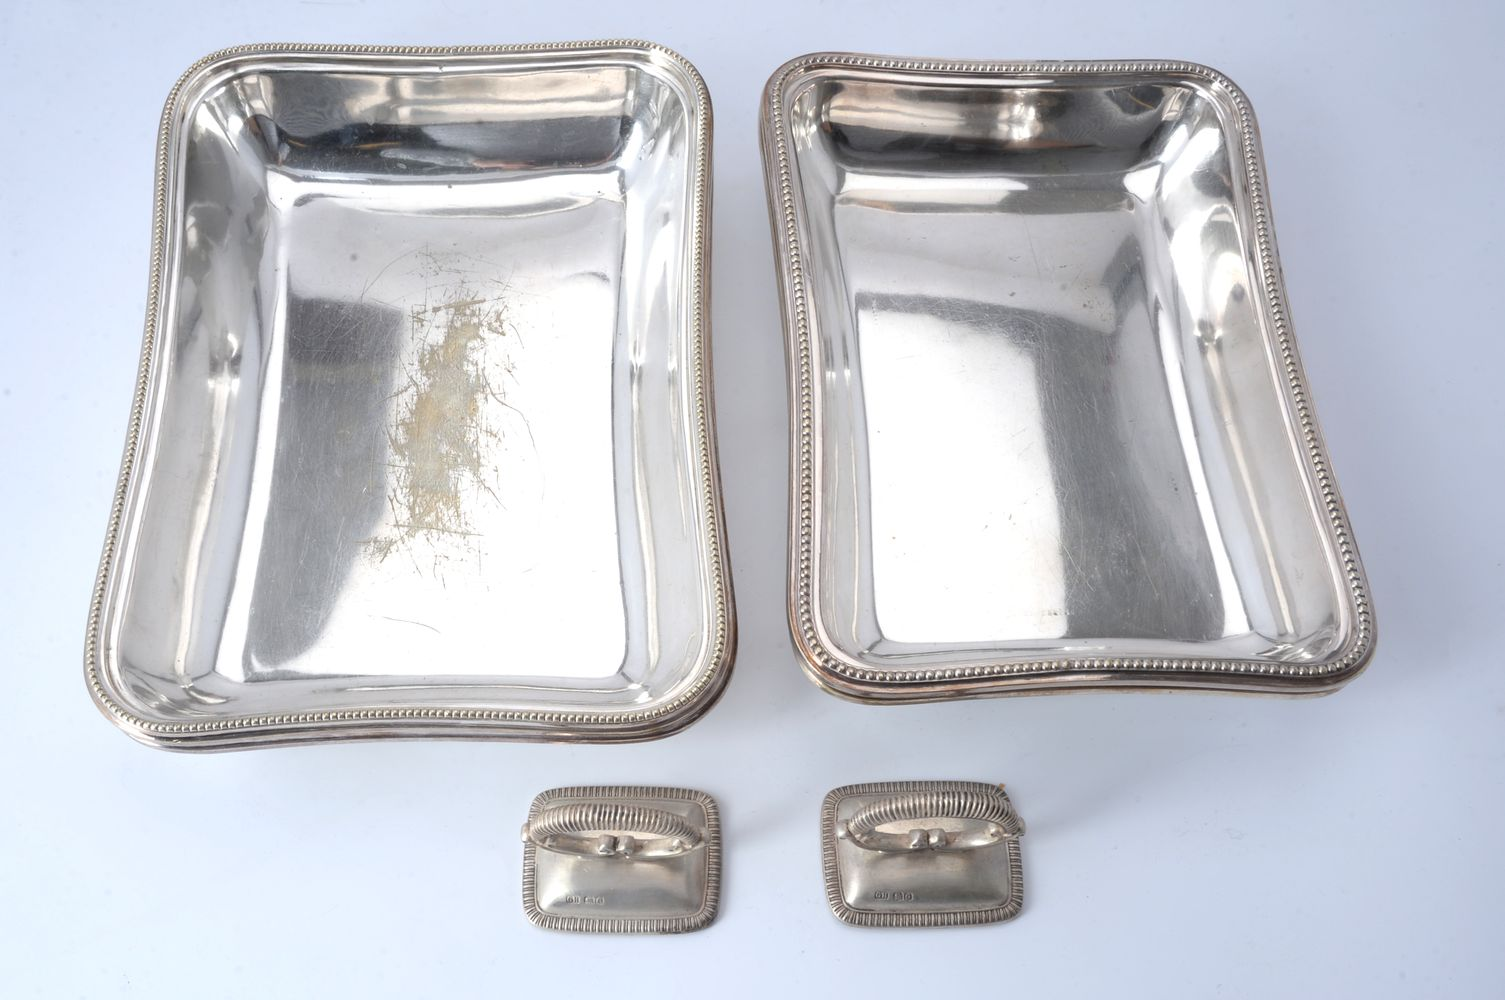 A pair of electro-plated rectangular entree dishes and covers with matched silver handles